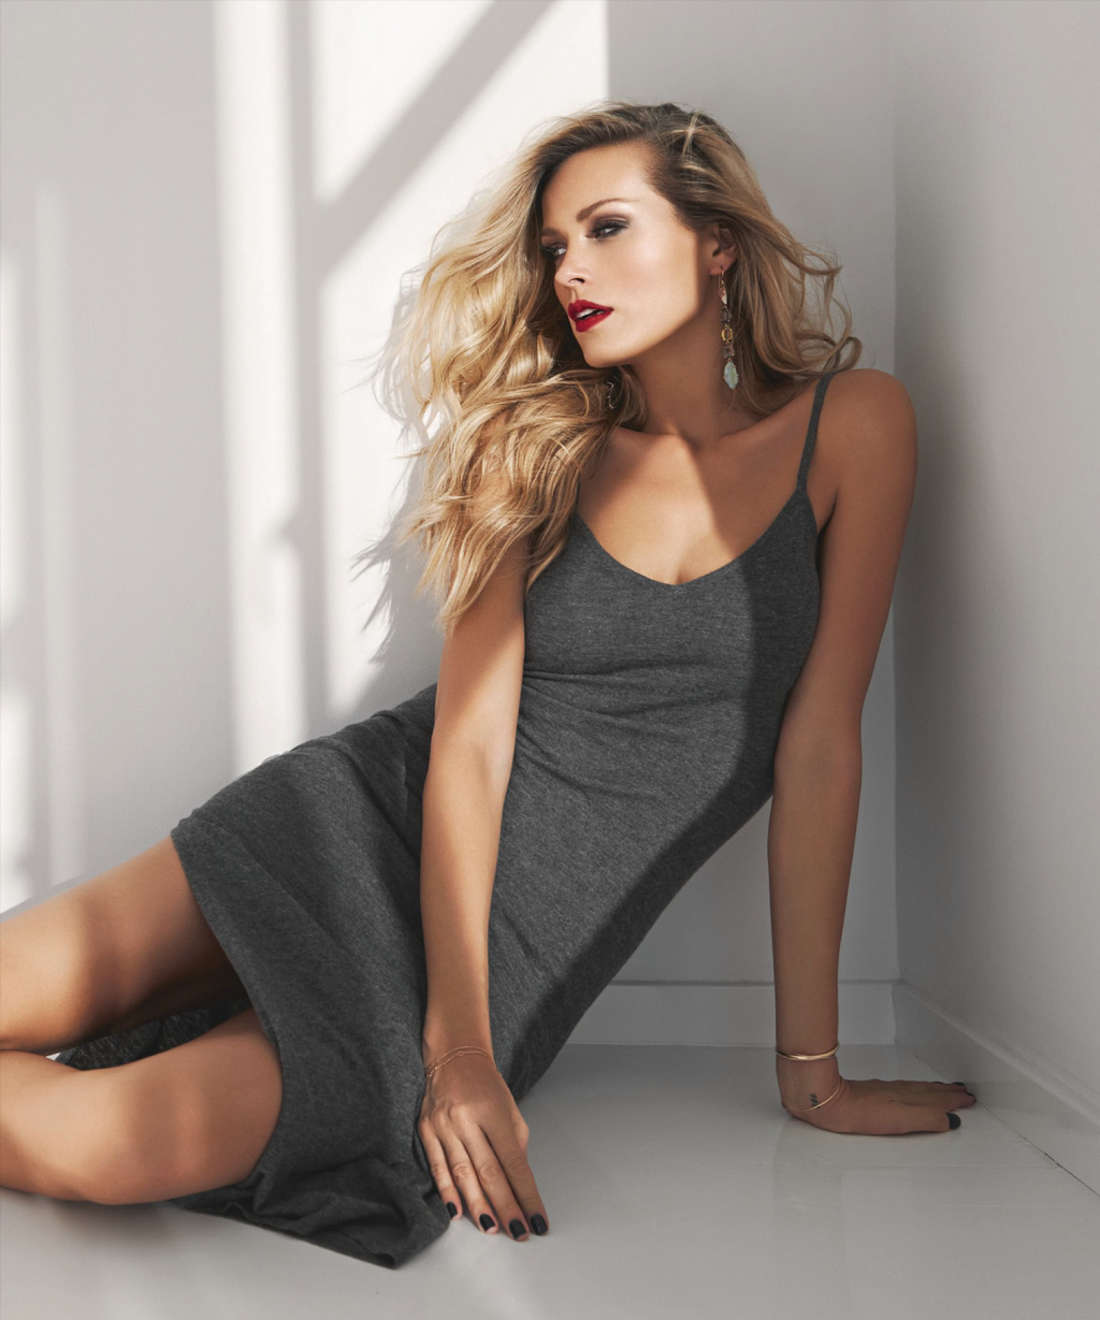 Petra Nemcova - Modern Luxury Magazine (November 2014)